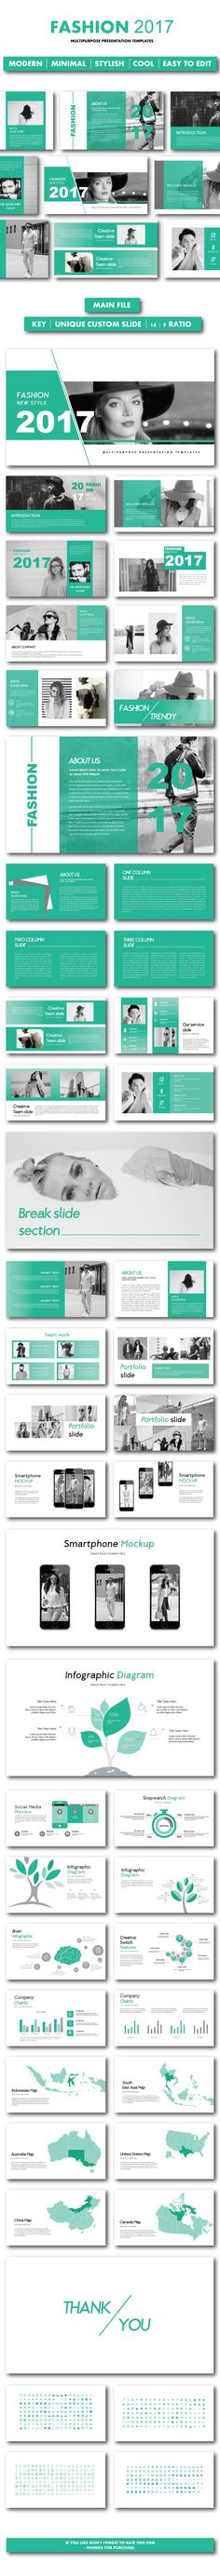 Fashion 2017 Keynote Templates - Keynote Templates Presentation Templates Download here : https://graphicriver.net/item/fashion-2017-keynote-templates/20820402?s_rank=3&ref=Al-fatih #keynote #keynote template #keynote slides #design #premium design #design of keynote #keynote presentation #envato #envato market #graphicriver